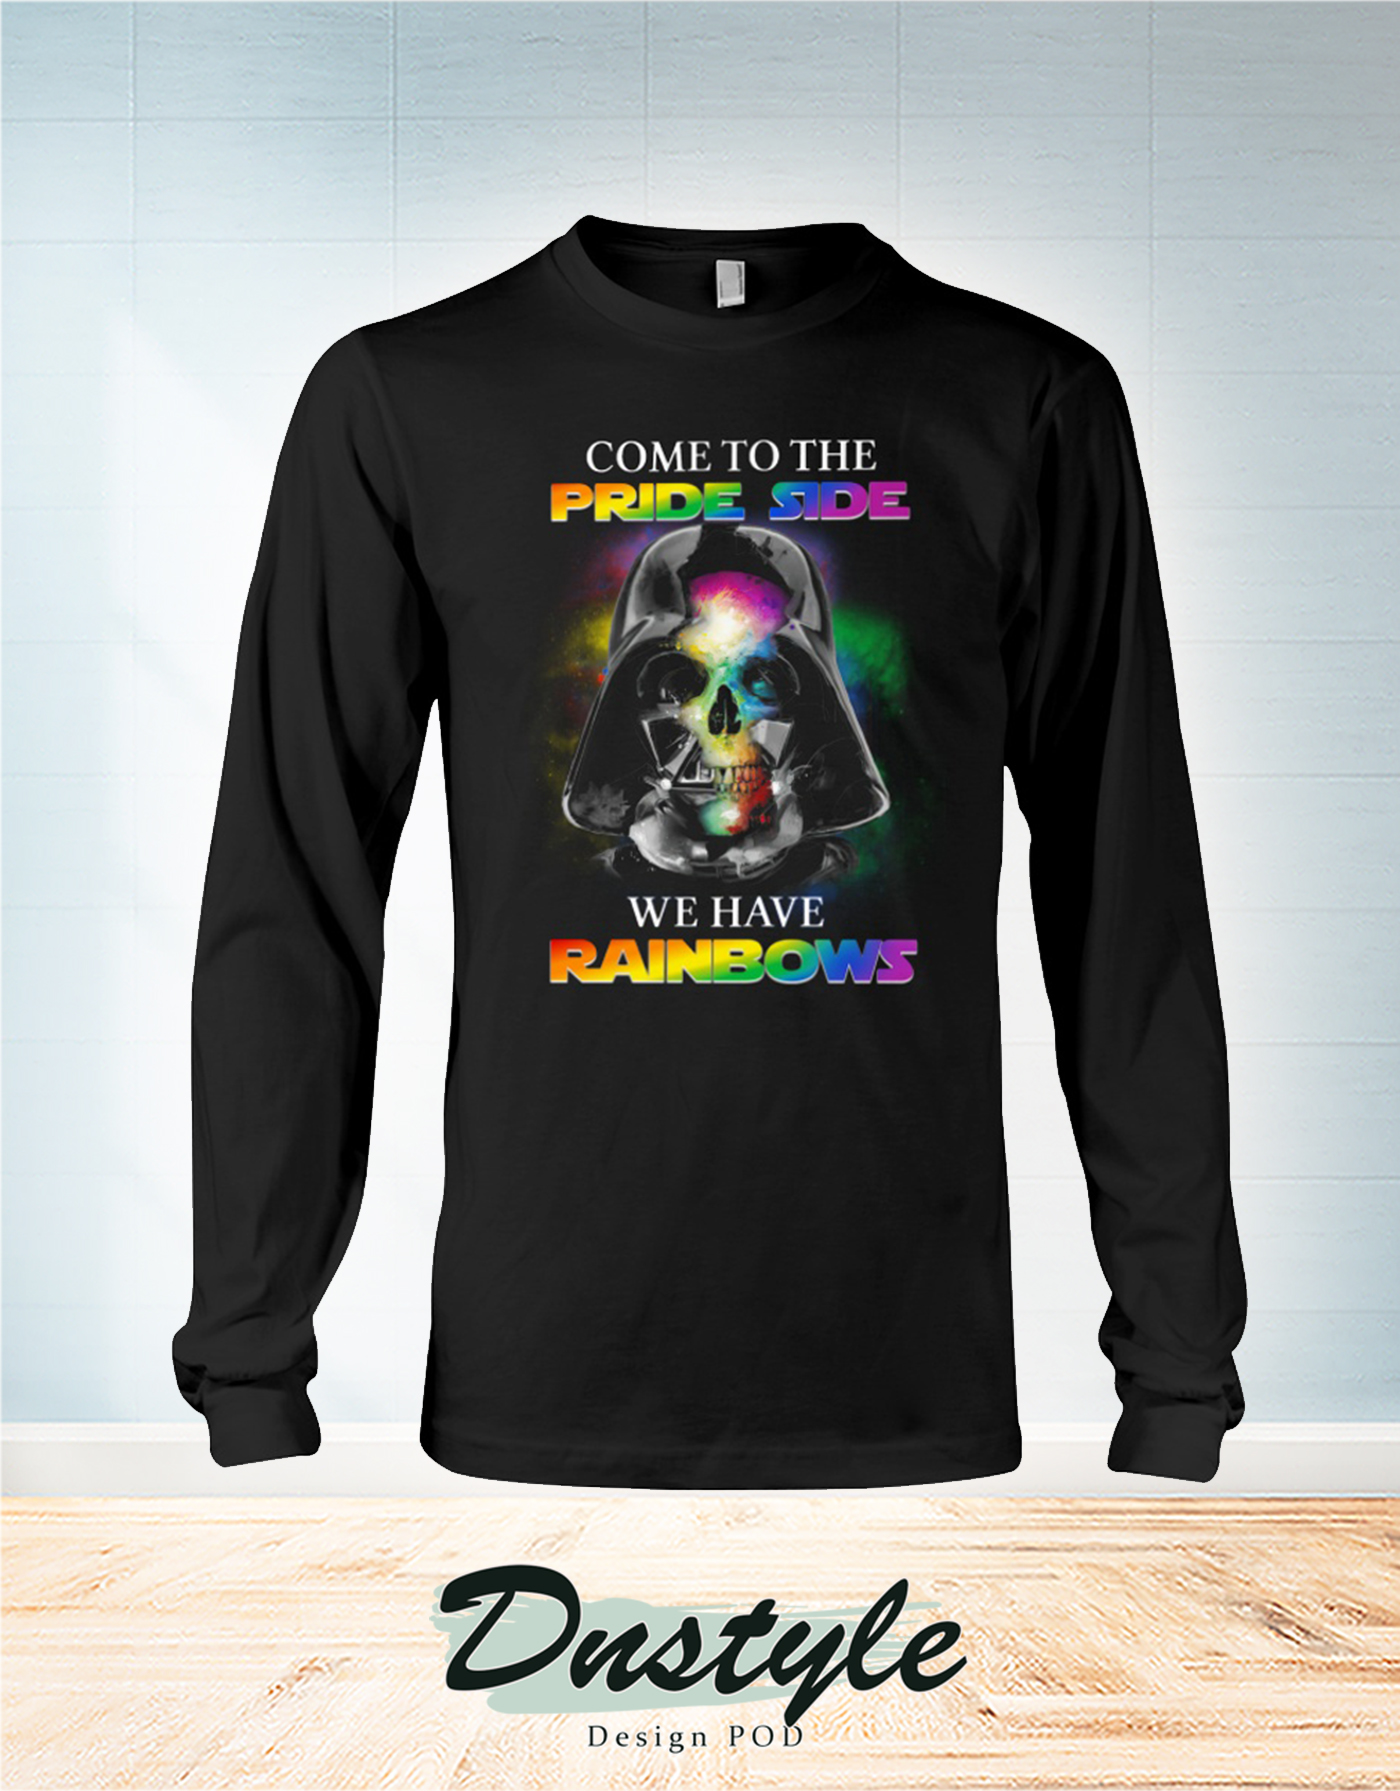 Darth vader come to pride side we have rainbows long sleeve